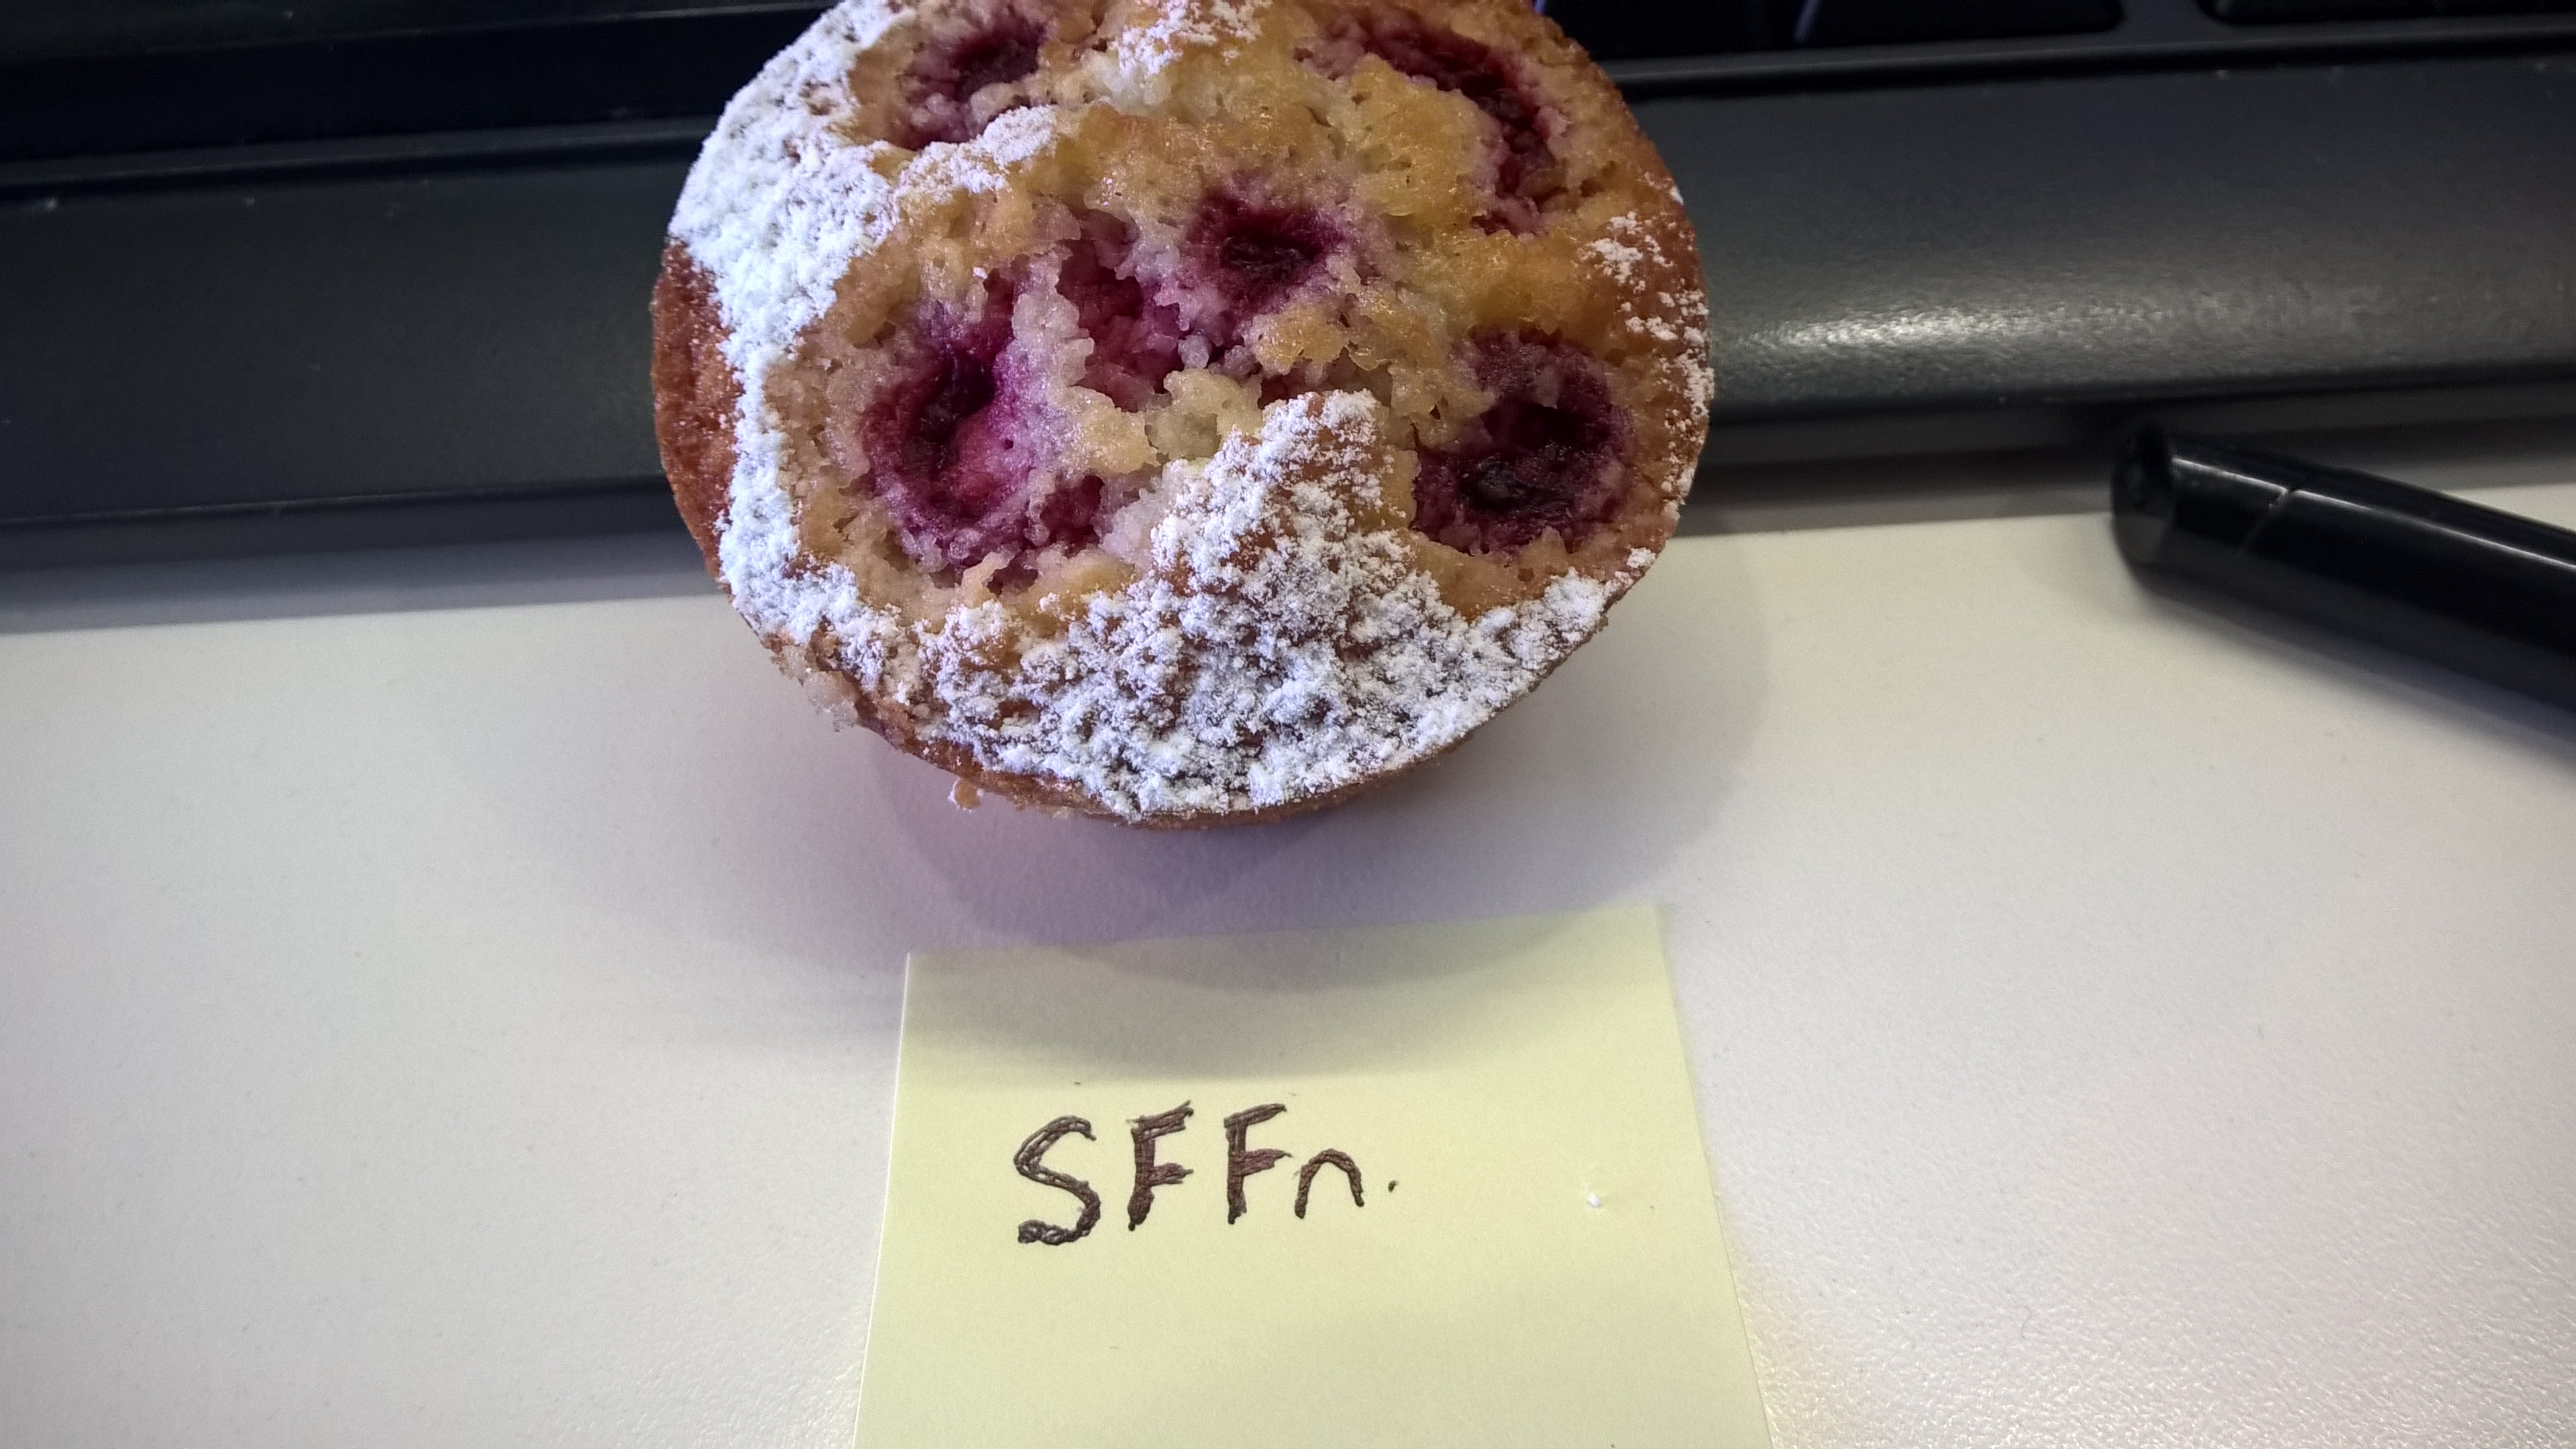 Oh come on, John, what is this? A birthday muffin? Is this how folks in New Zealand celebrate birthdays?!?